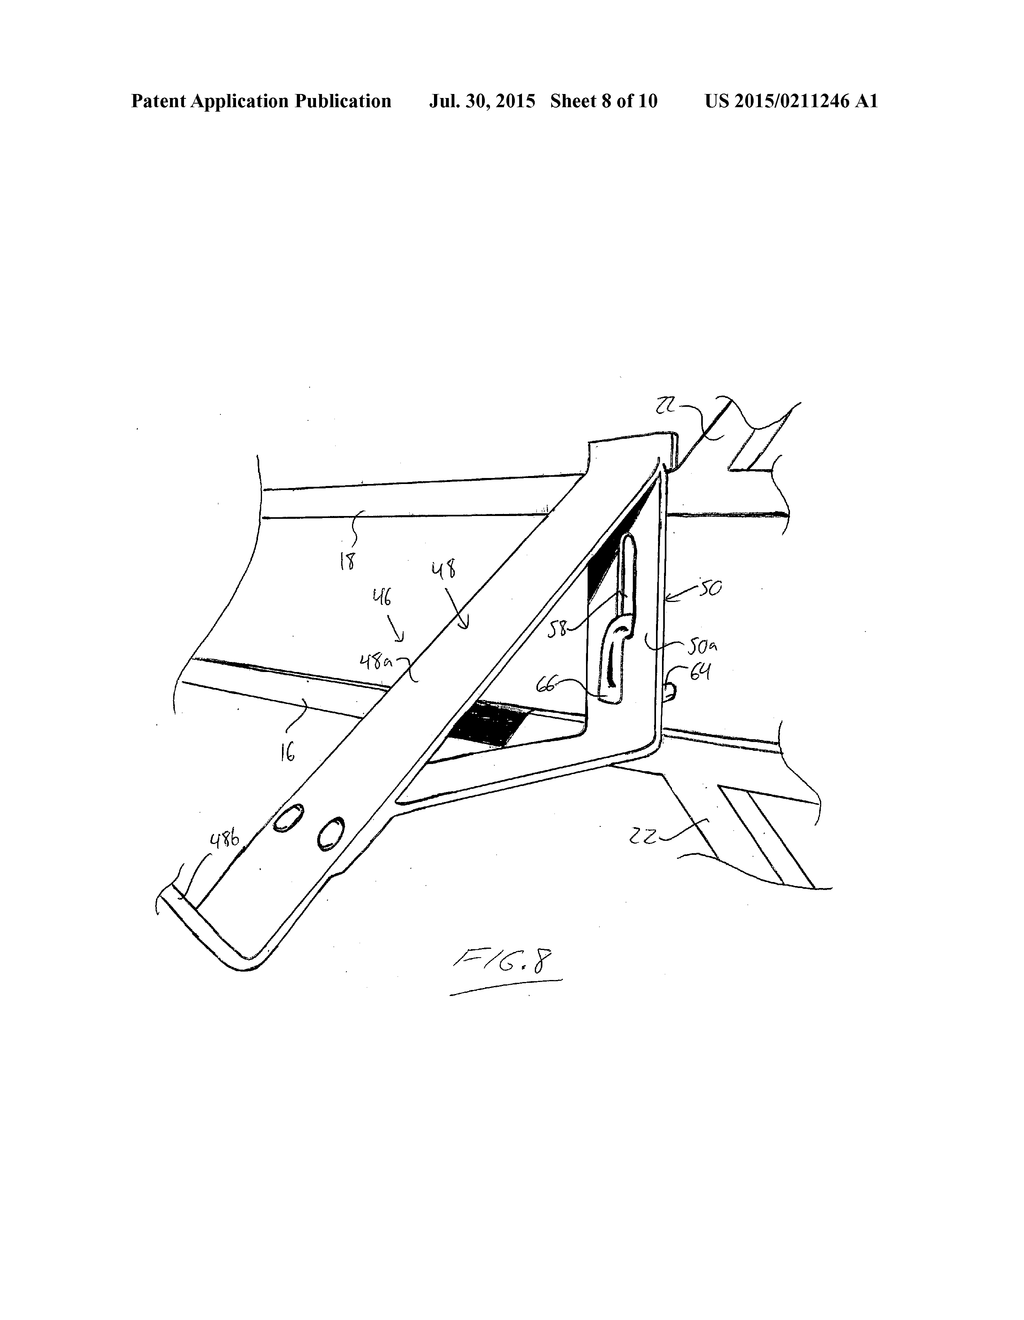 rooftop bracket or jack system for supporting roofers roofing Different Types Roof House with Diagrams rooftop bracket or jack system for supporting roofers roofing supplies or other rooftop loads diagram schematic and image 09